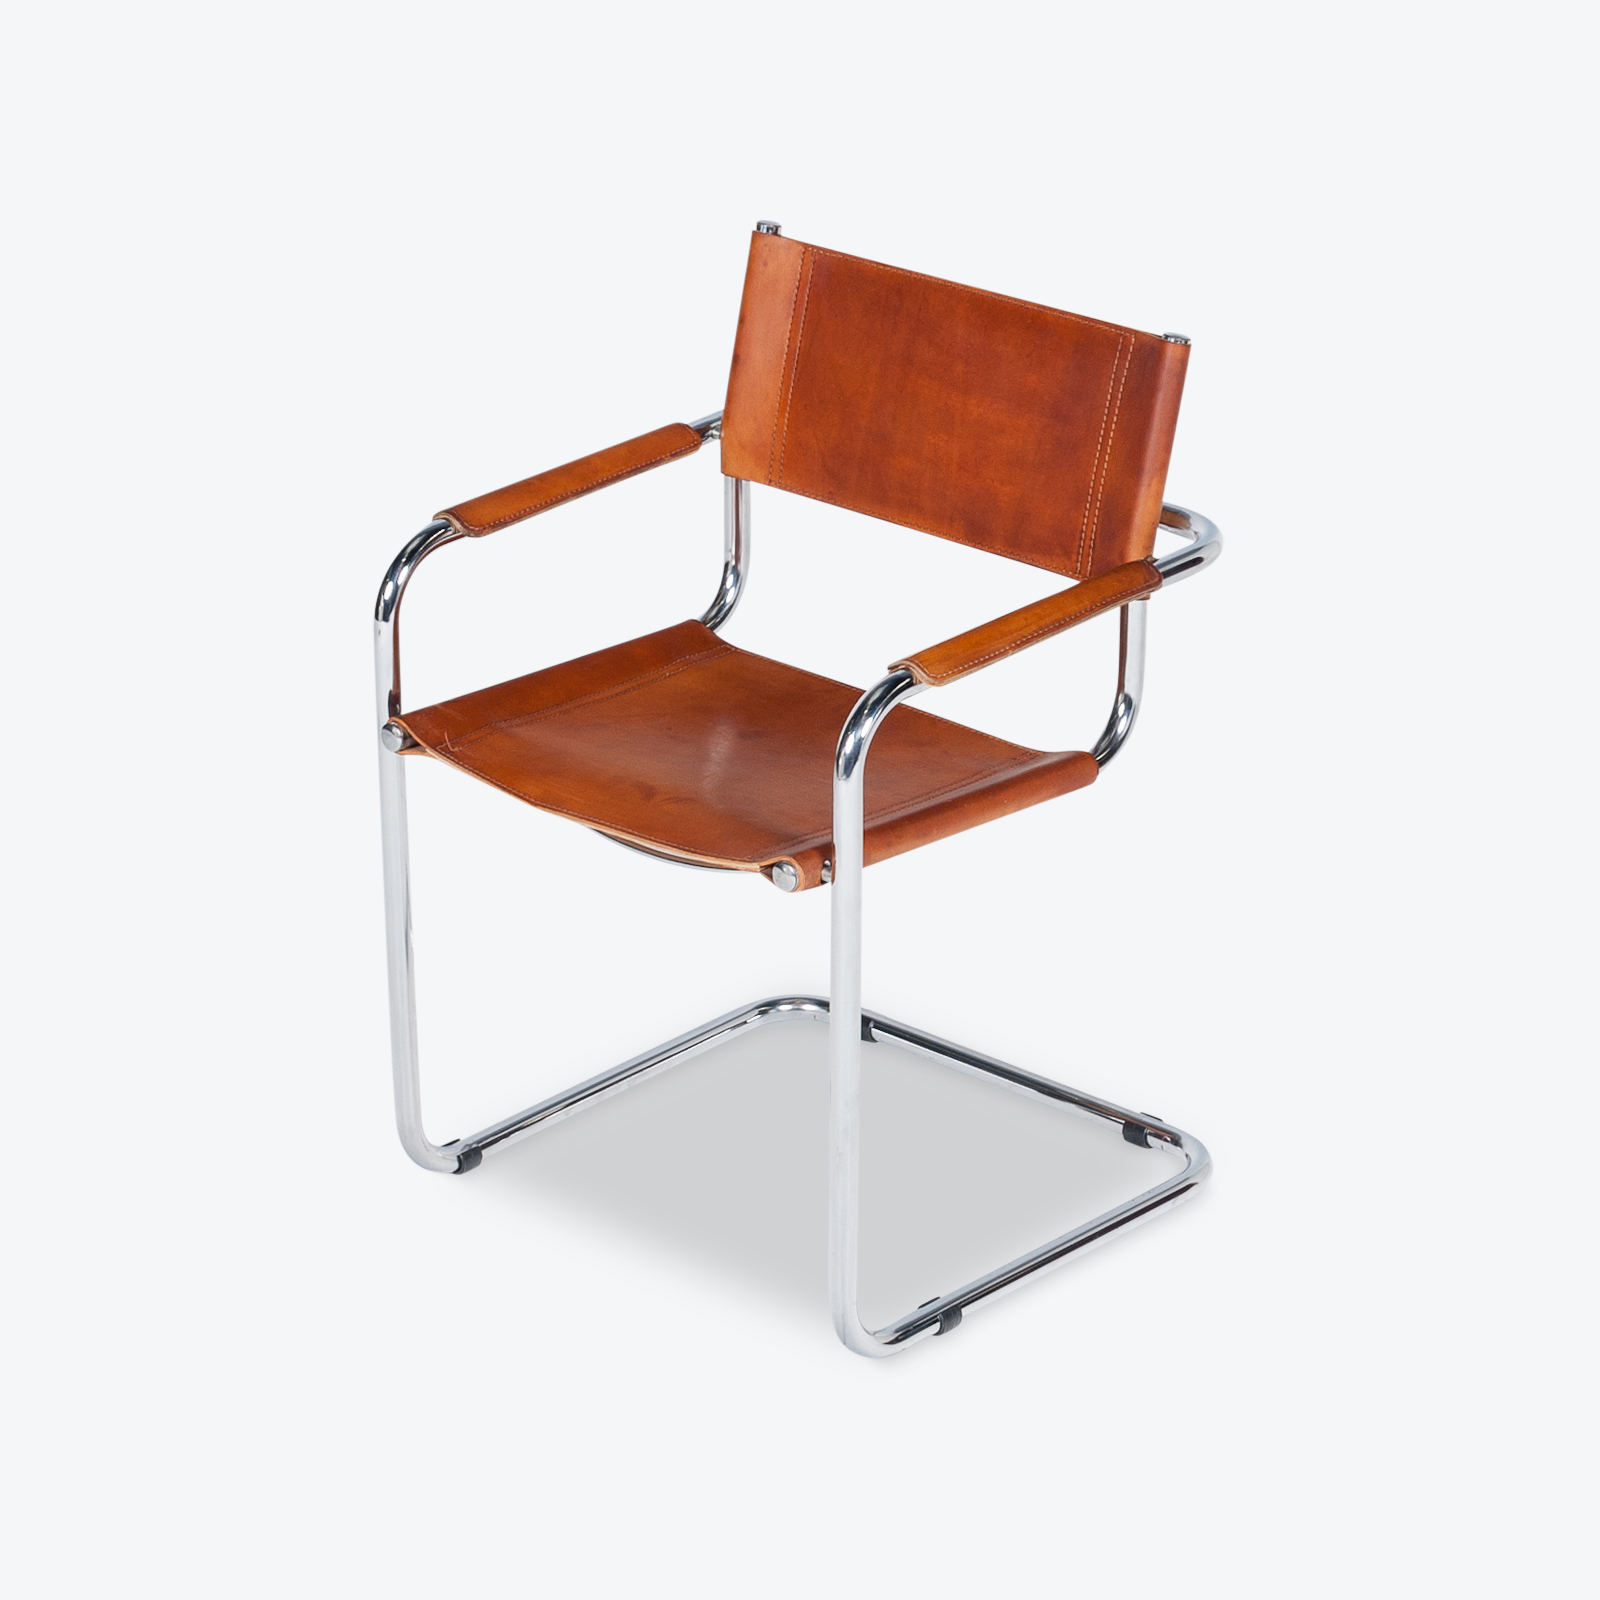 Set Of 4 Model S34 Cantilever Chairs In Tan Leather By Mart Stam For Thonet, 1980s, Germany Hero